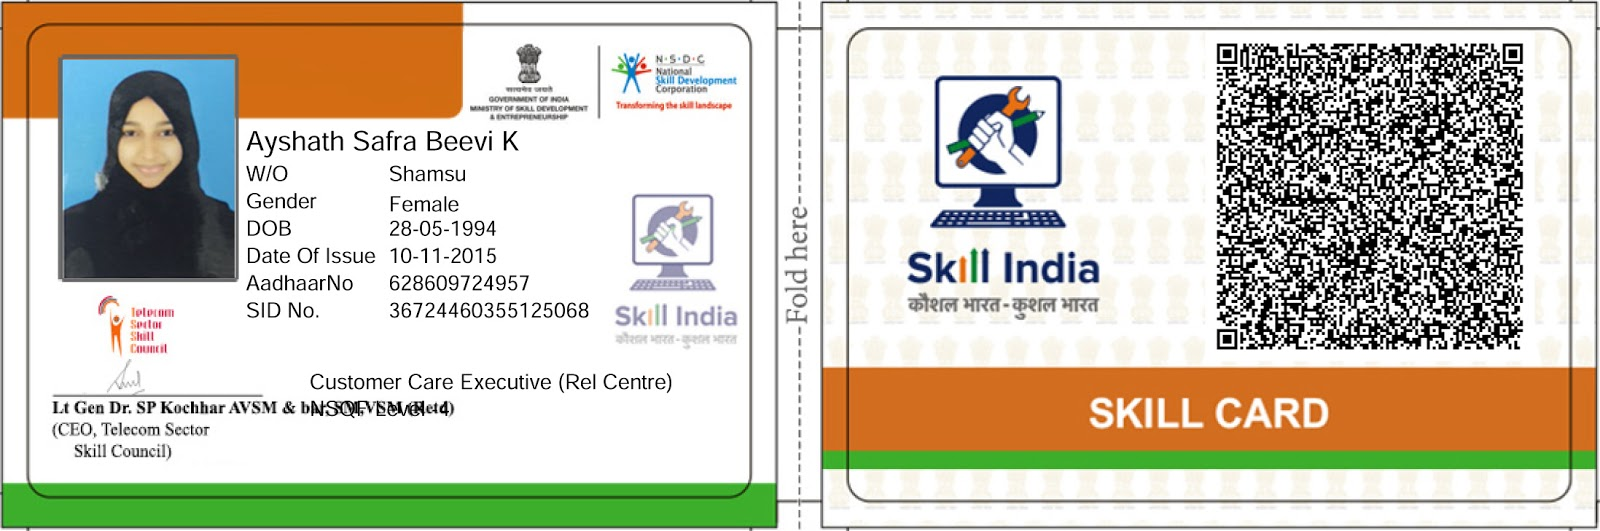 wayline management consultants pvt skill card govt to the skill card will contain a quick response qr code which upon scanning will inform the employer about the type of skills a person has or the course they